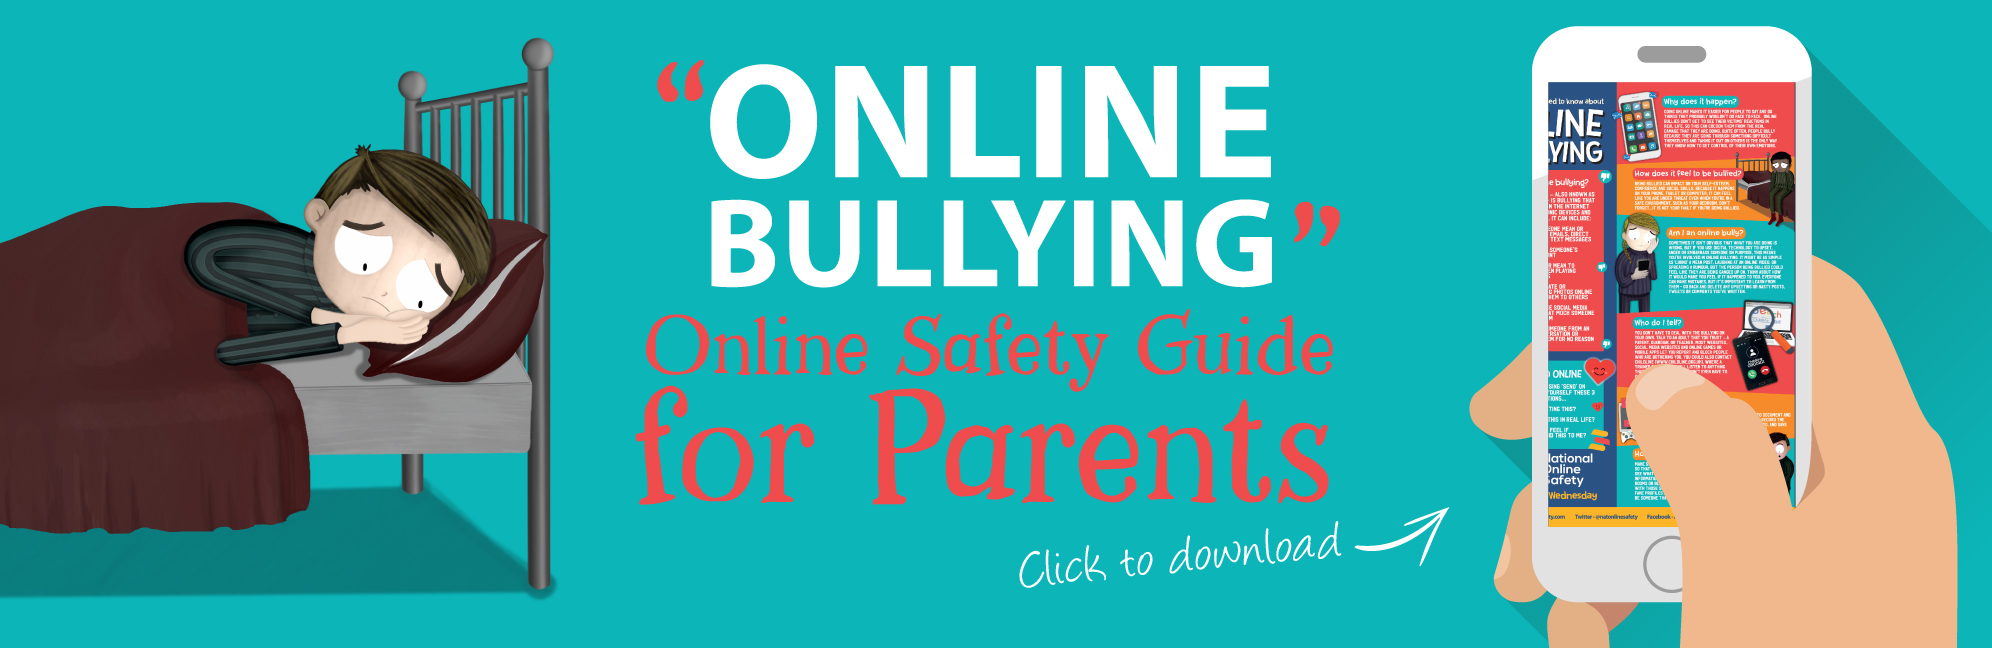 Online-Bullying-Web-Banner